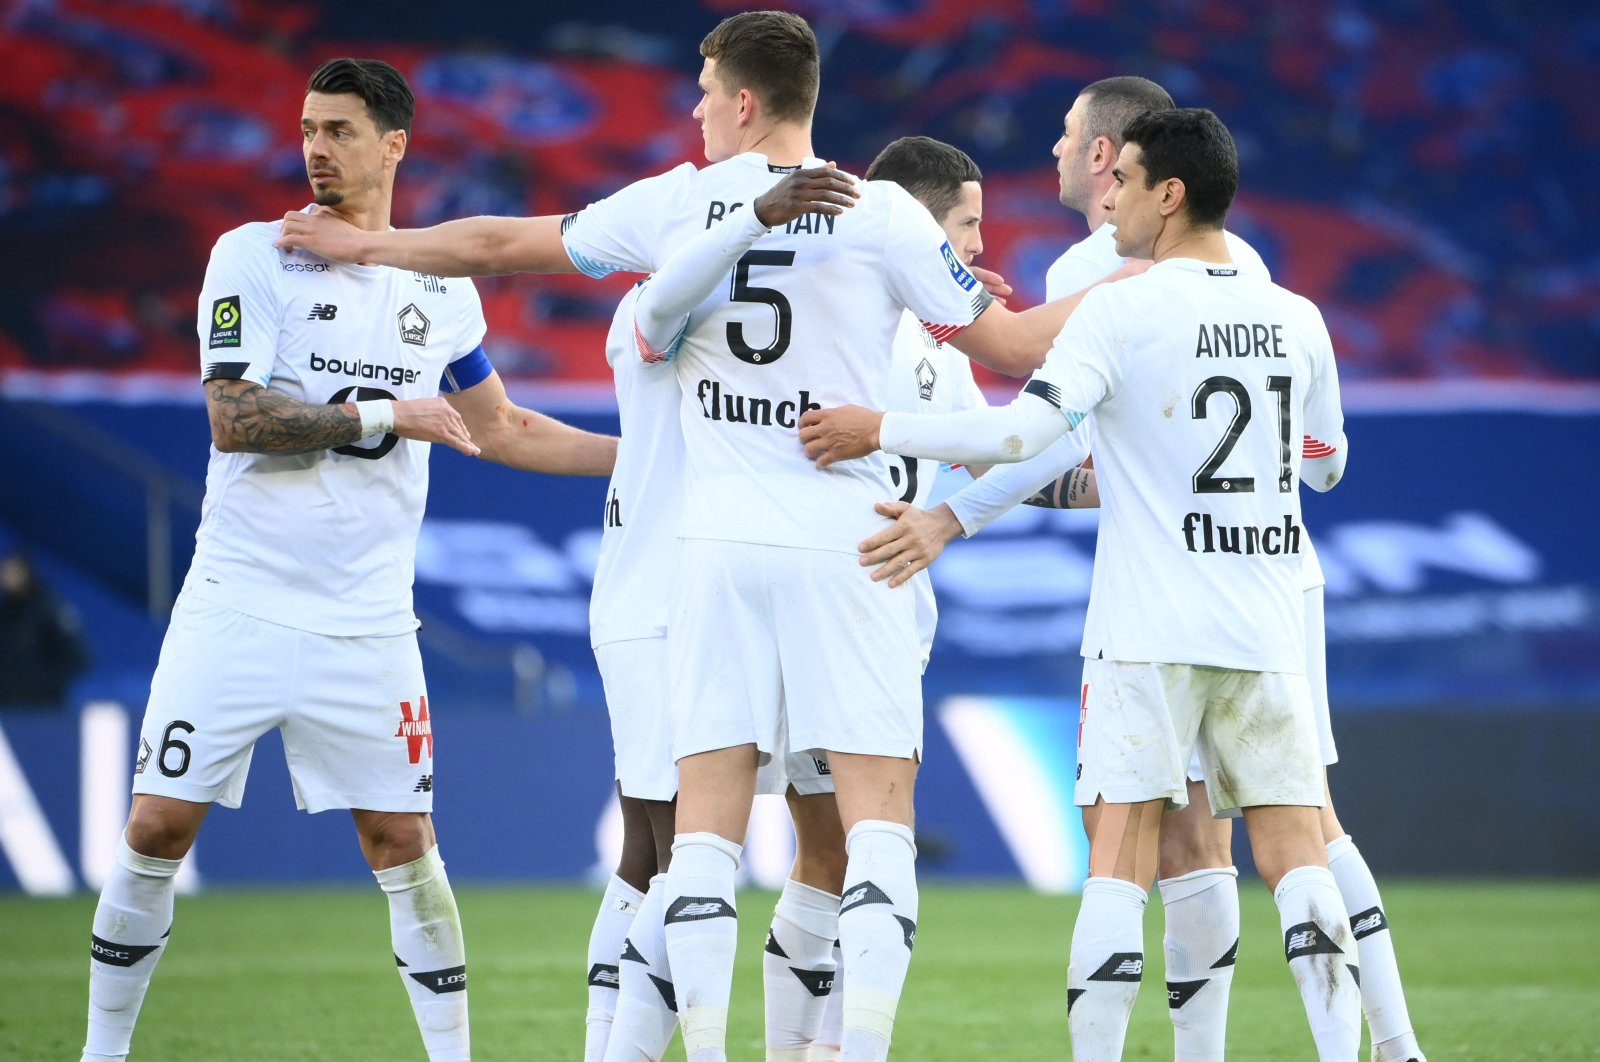 Lille's players celebrate after winning the French Ligue 1 football match between Paris-Saint Germain and Lille (LOSC) at the Parc des Princes Stadium in Paris, on April 3, 2021. (AFP Photo)